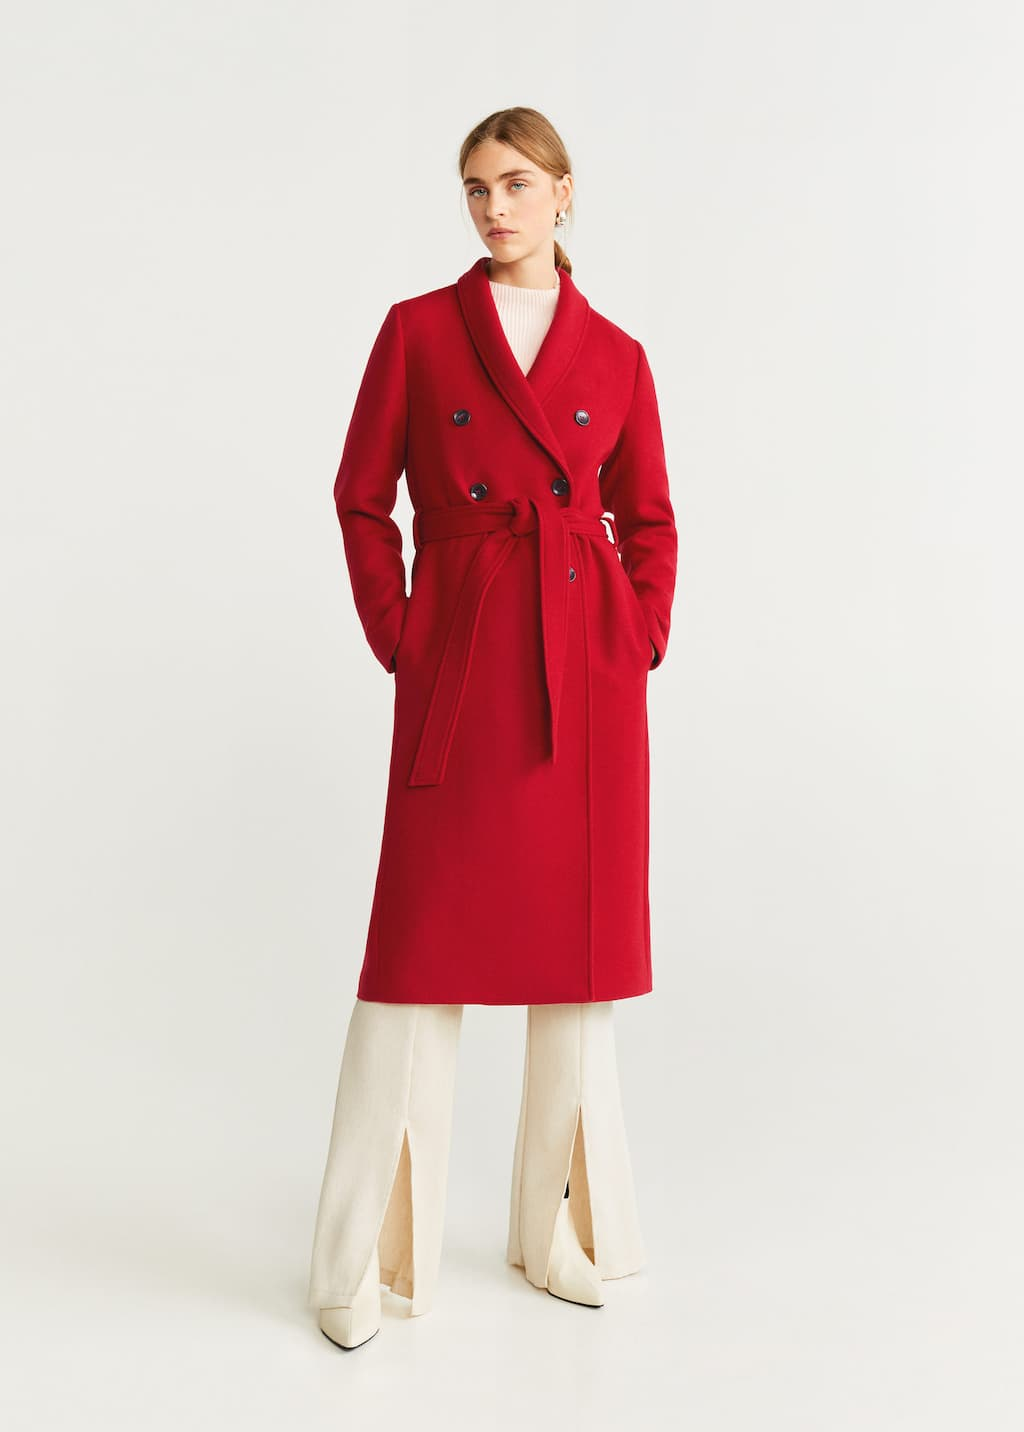 Double-breasted wool coat - General plane